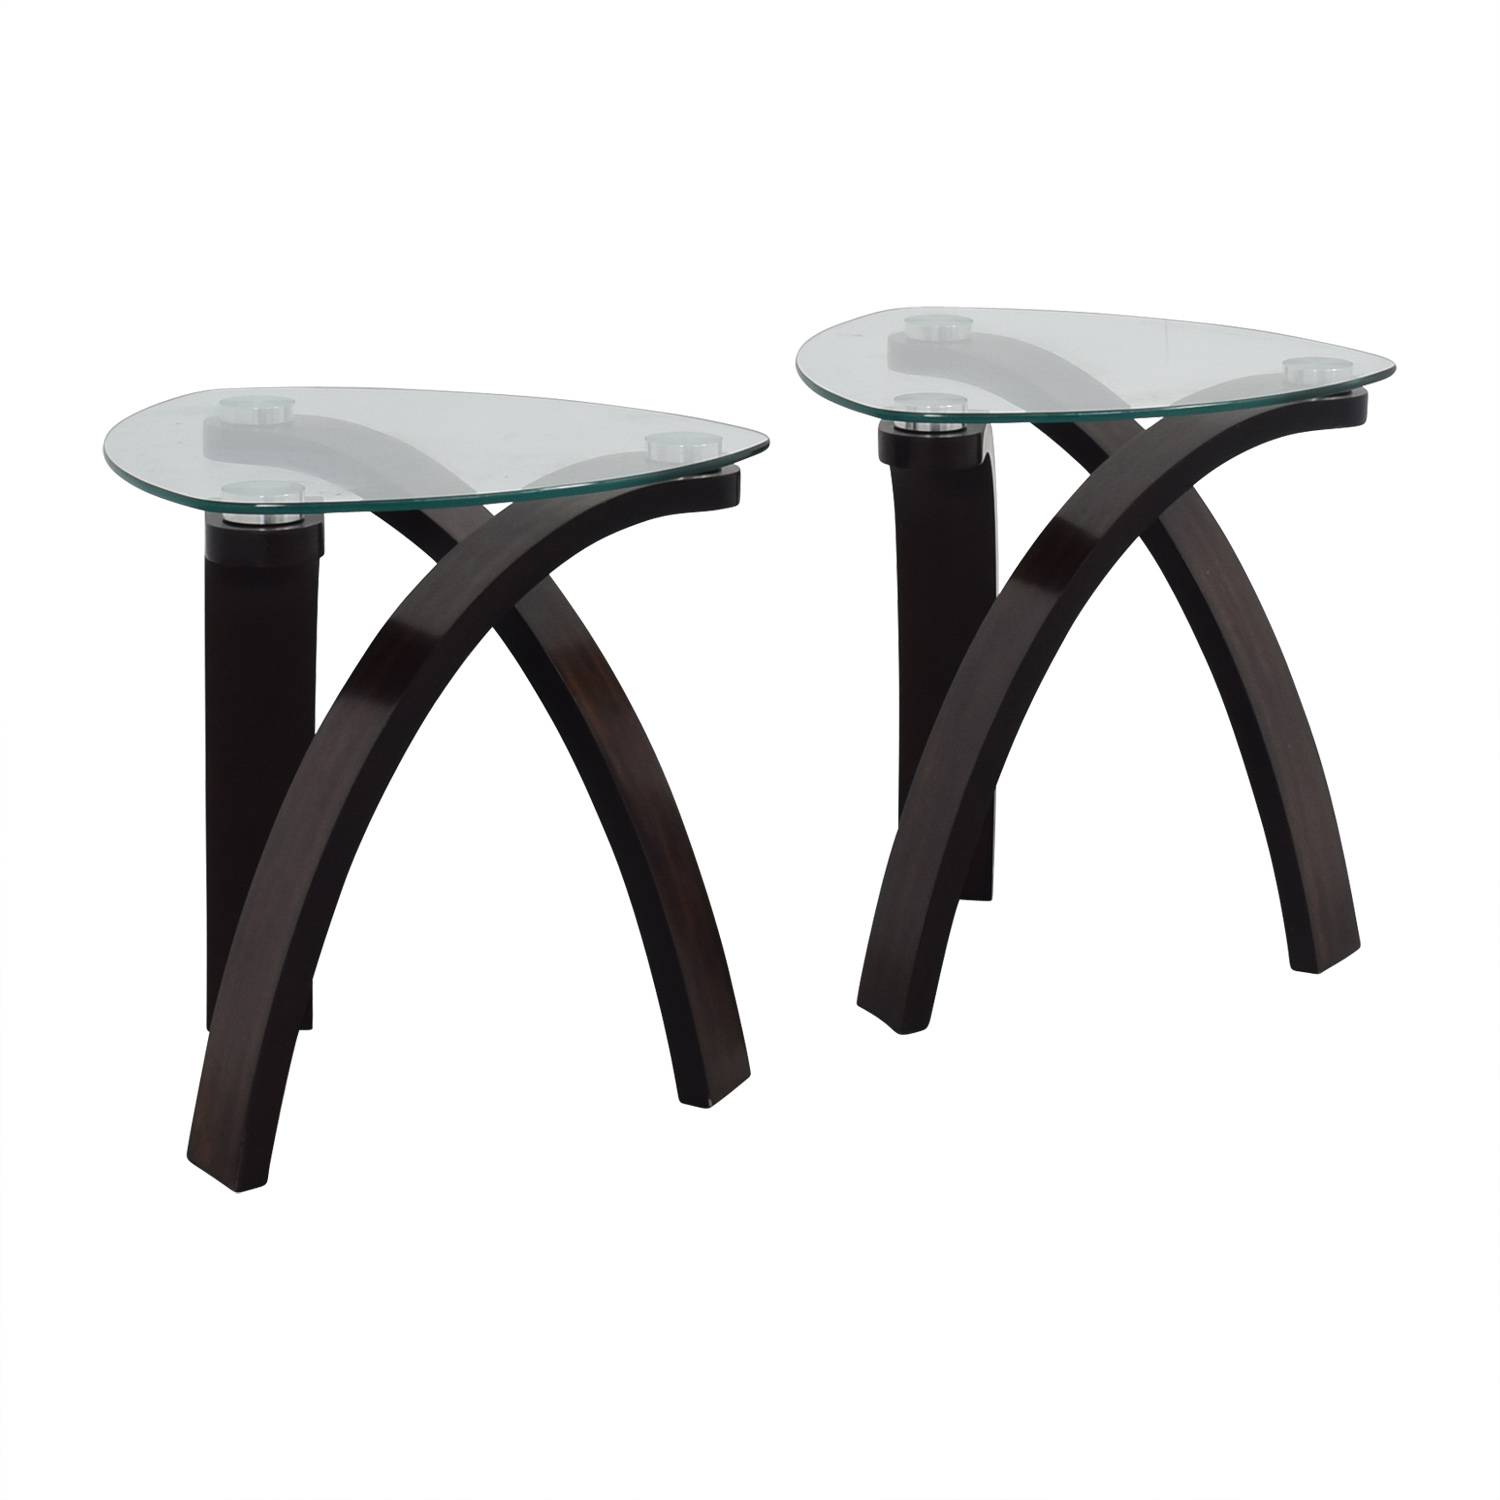 OFF Rooms To Go Rooms To Go Rounded Triangular Glass End - Black triangle end table